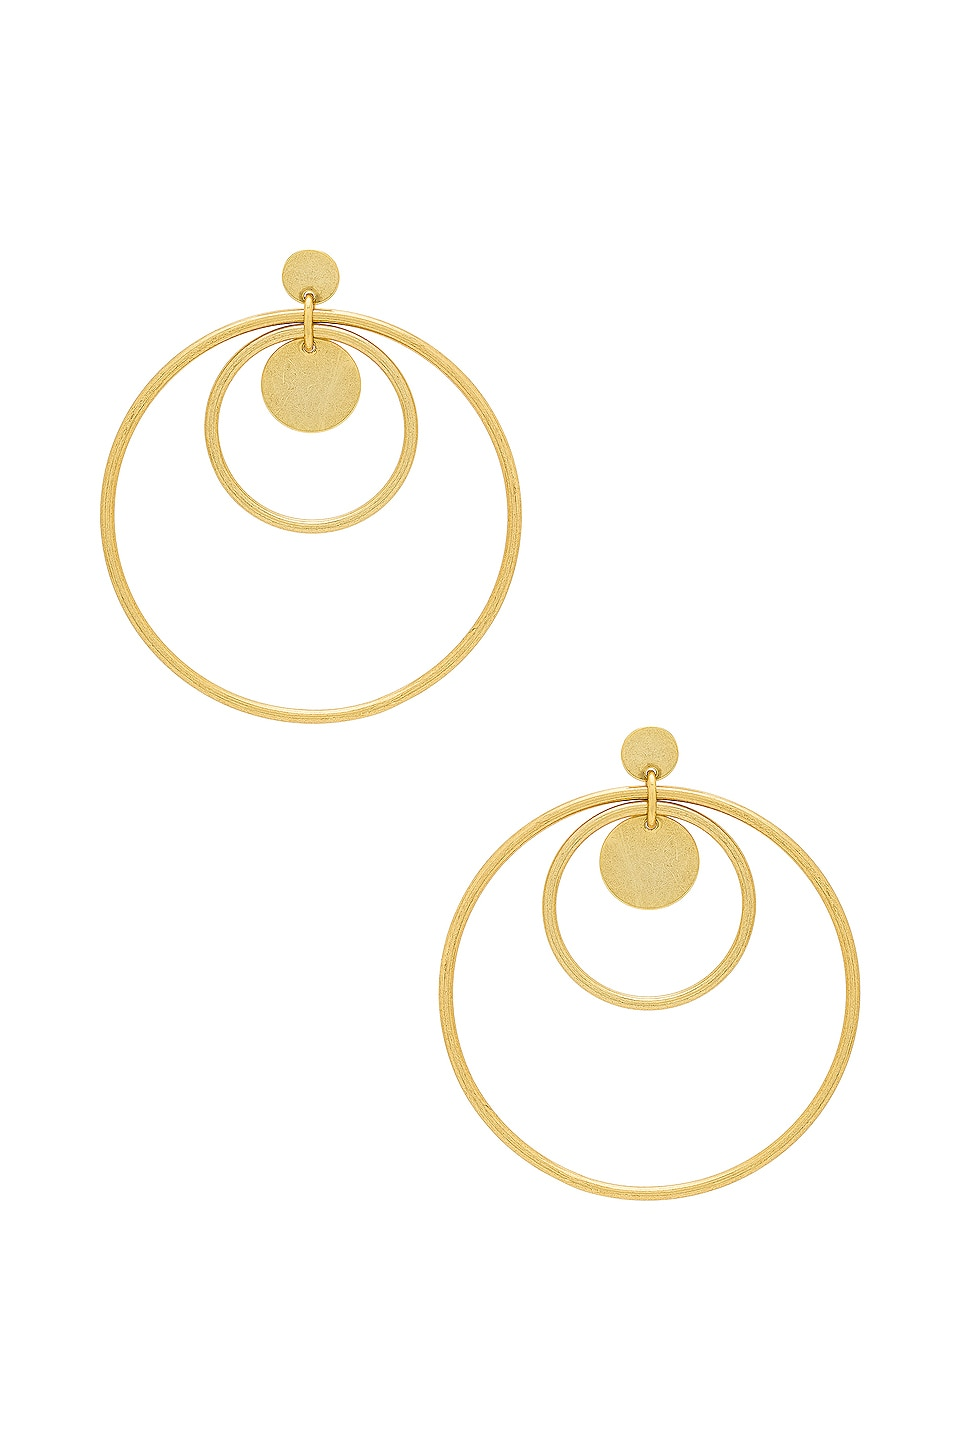 Luv AJ The Disco Fever Hoops in 14K Antique Gold